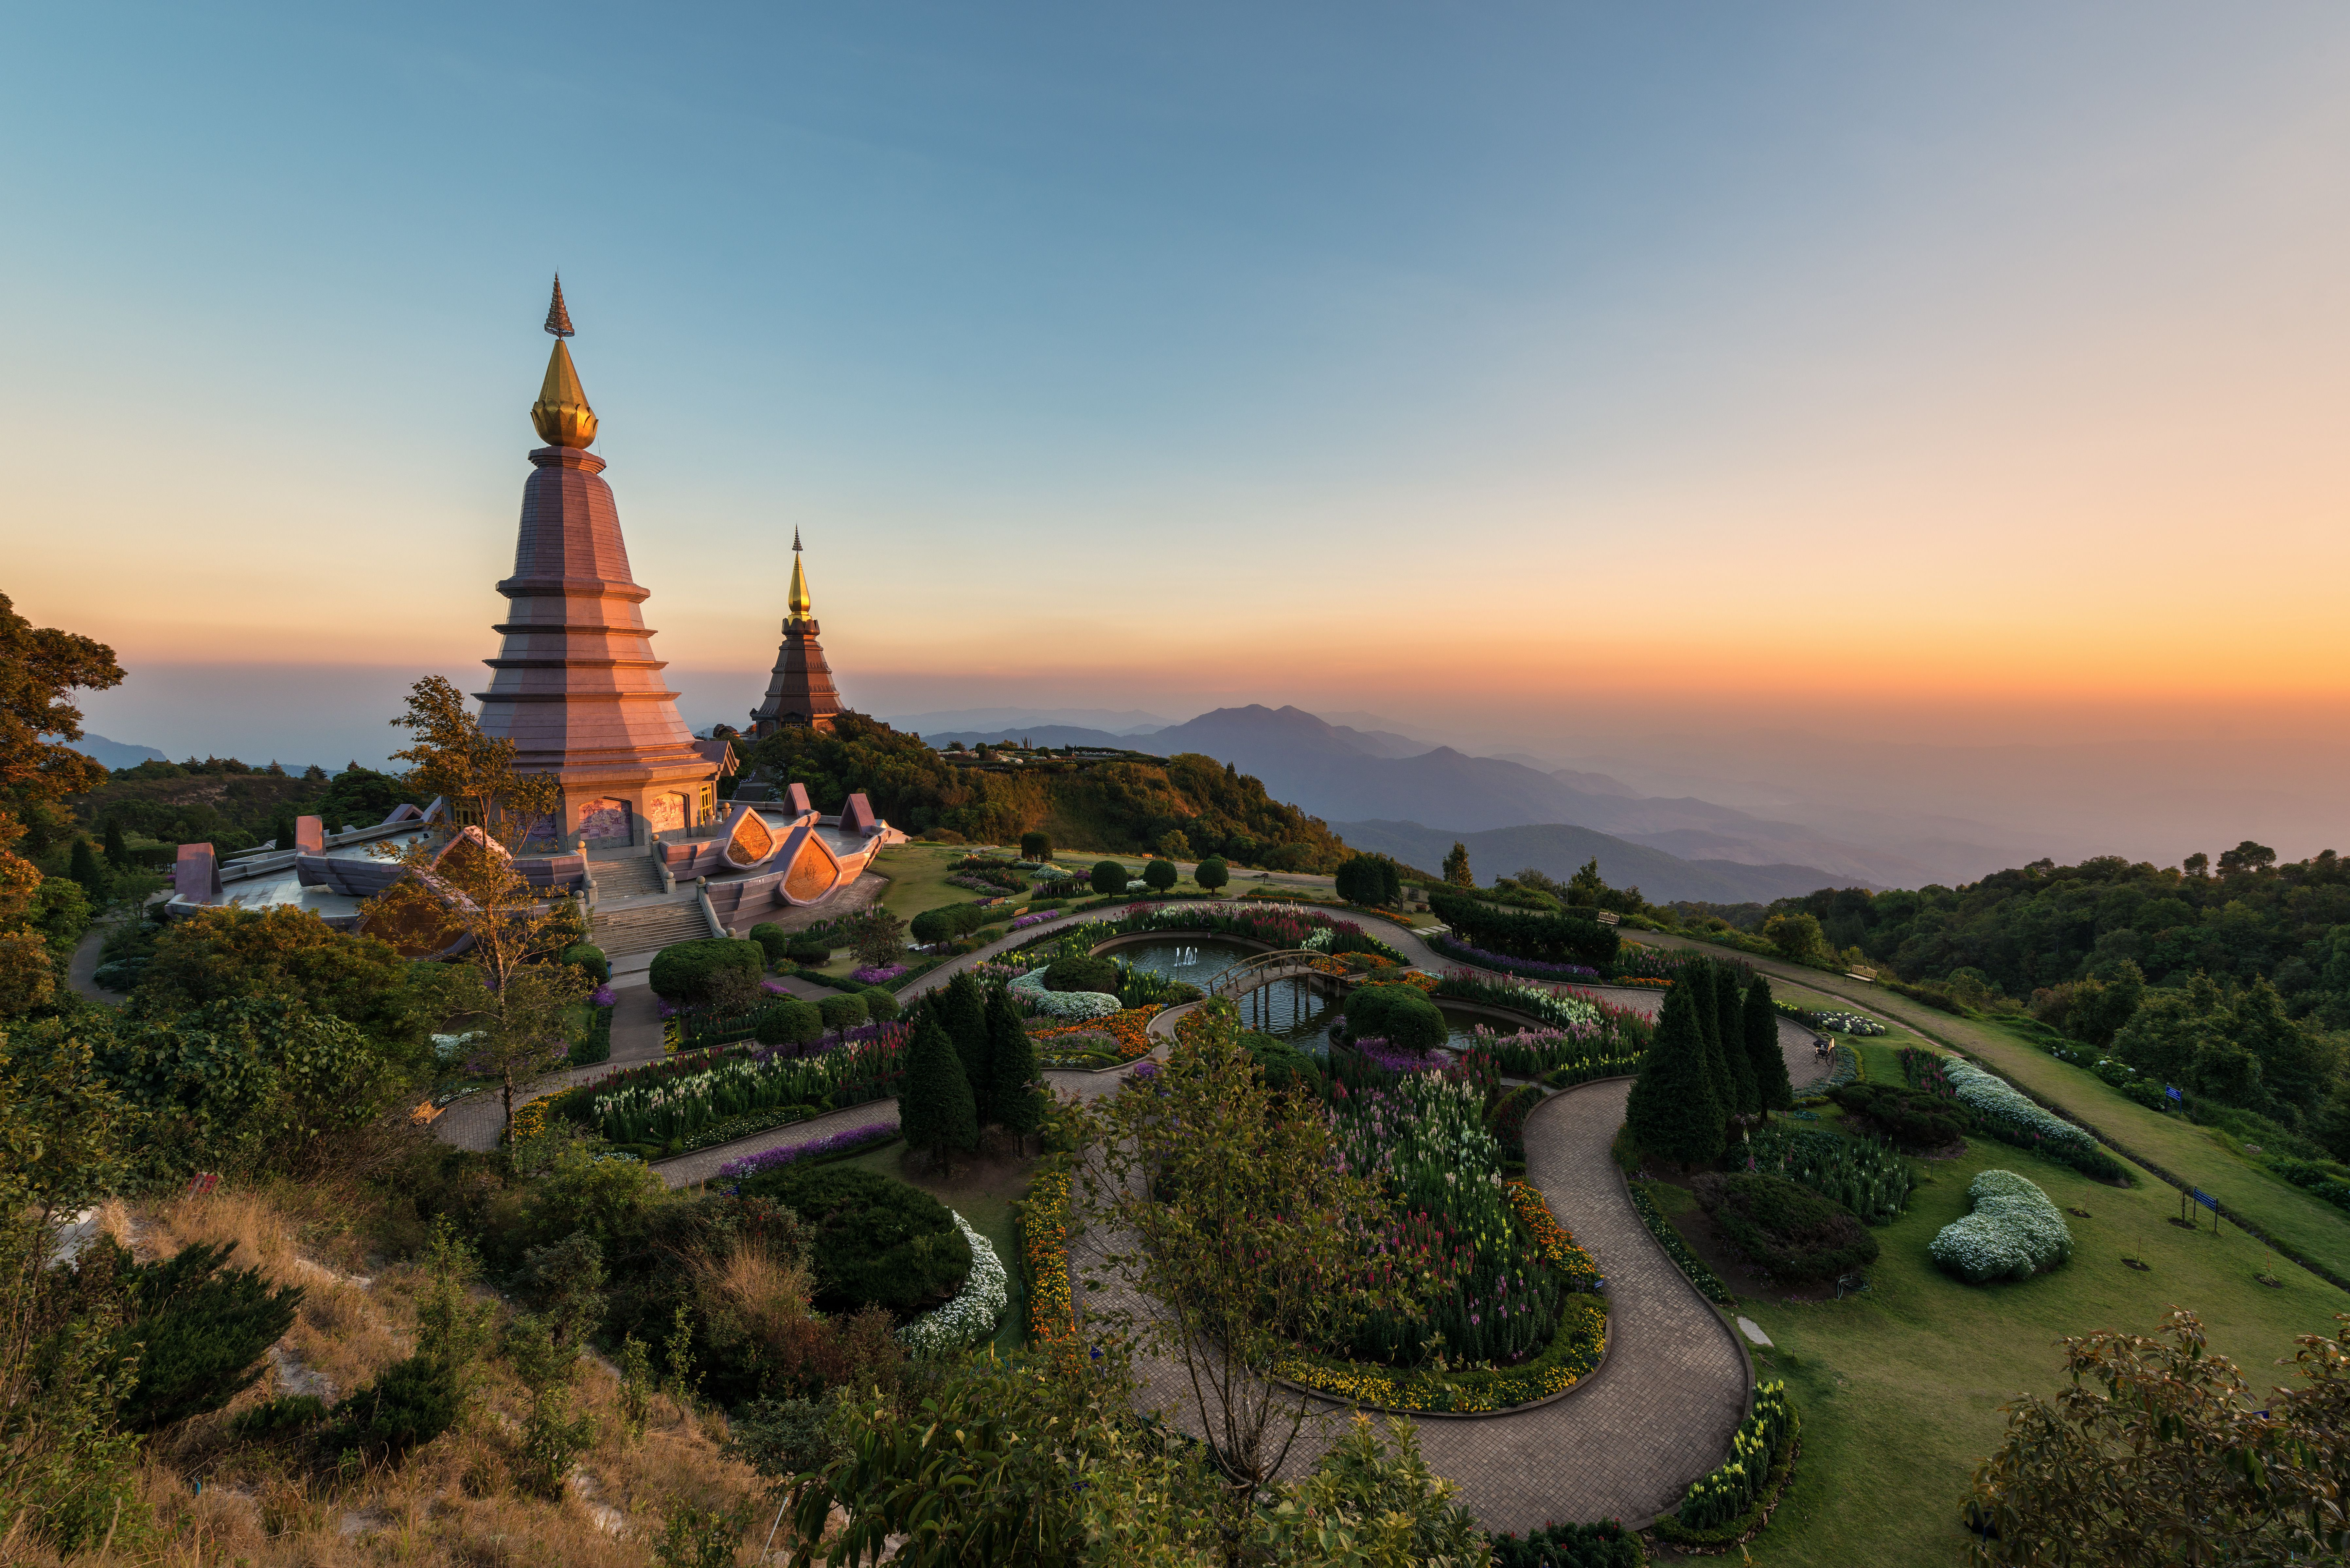 thailand northern visit places place inthanon doi region getty